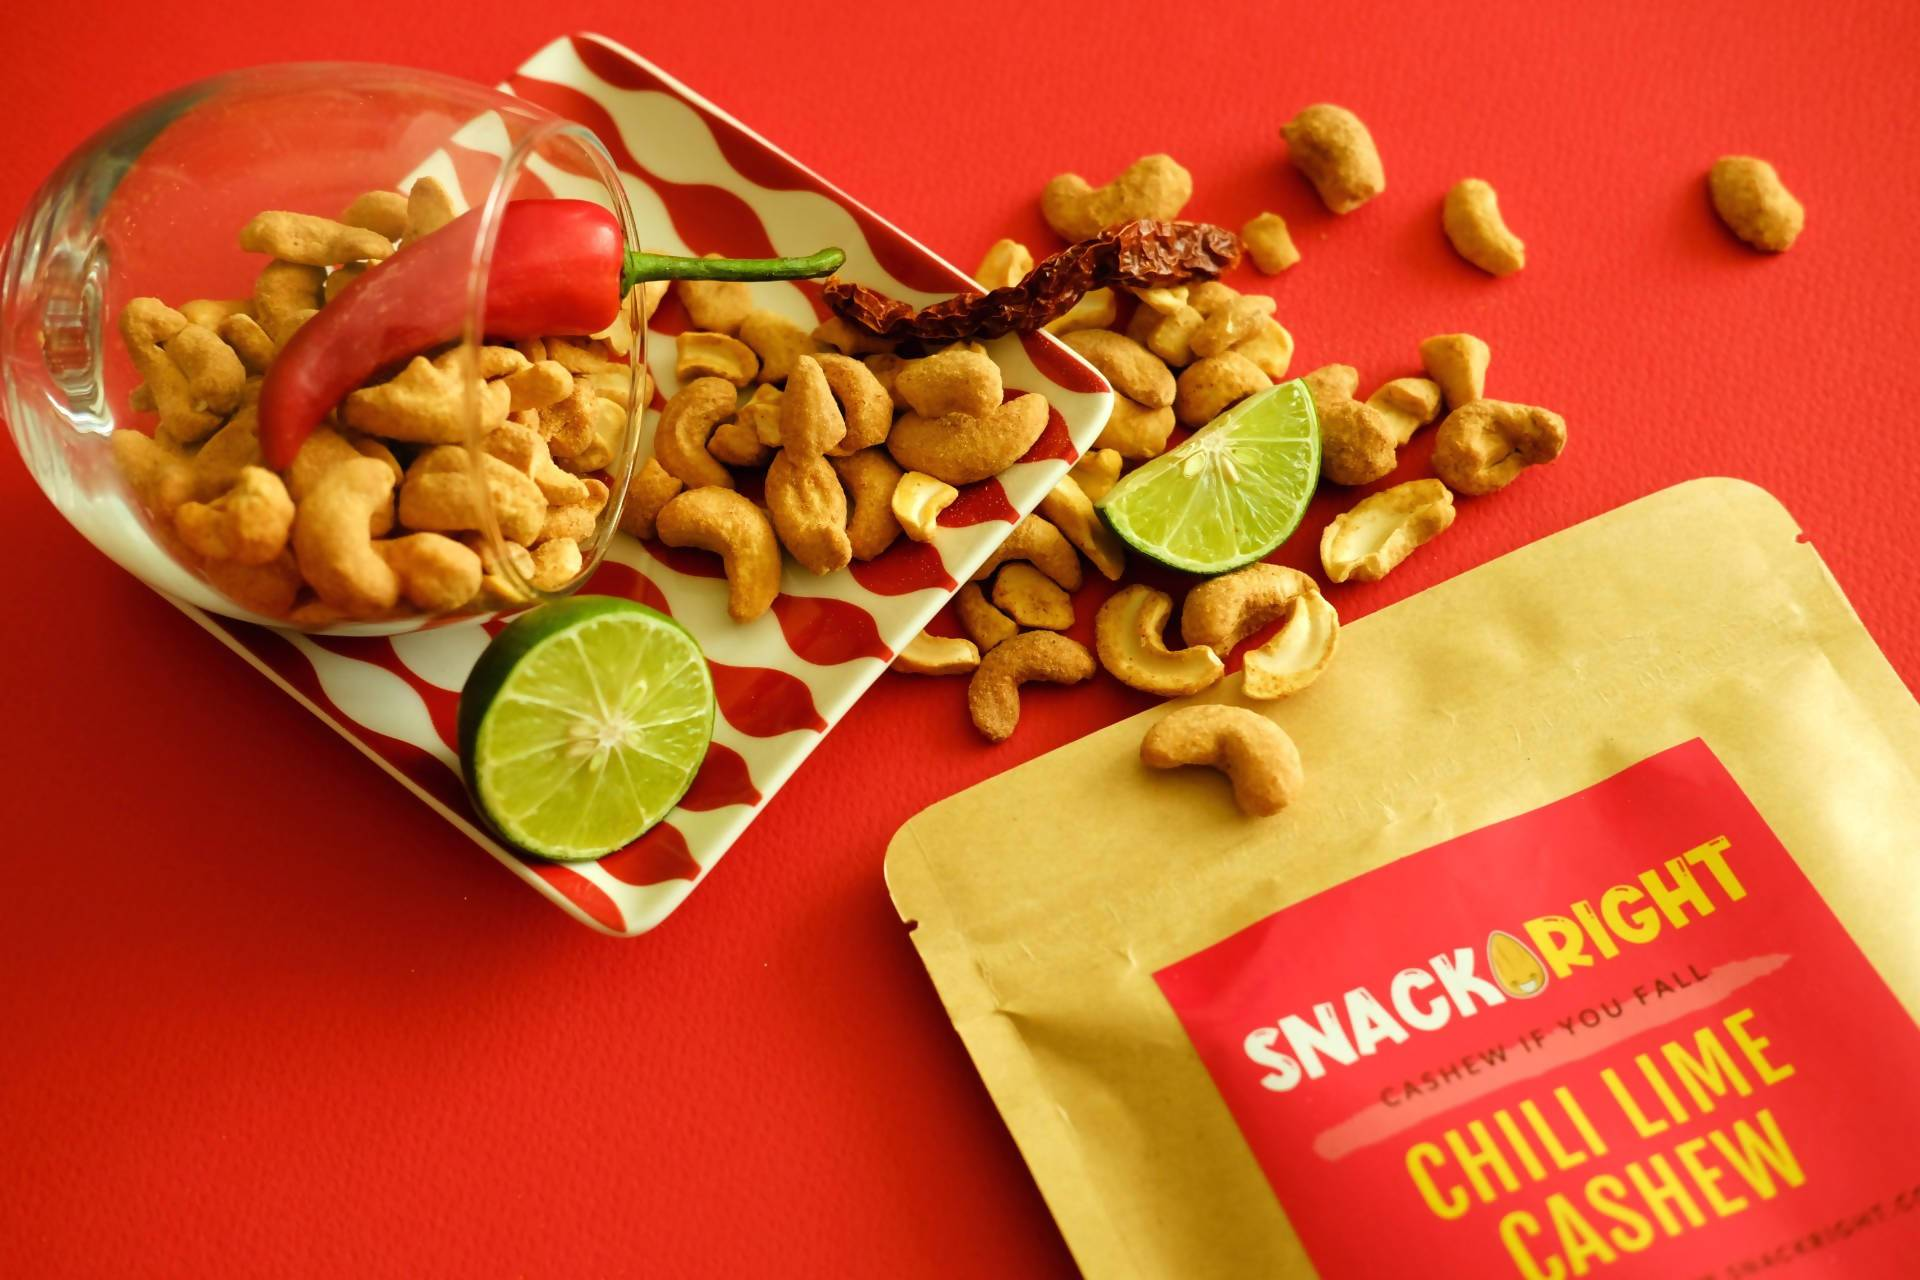 Chili Lime Cashew - Snacks - SnackRight - Naiise